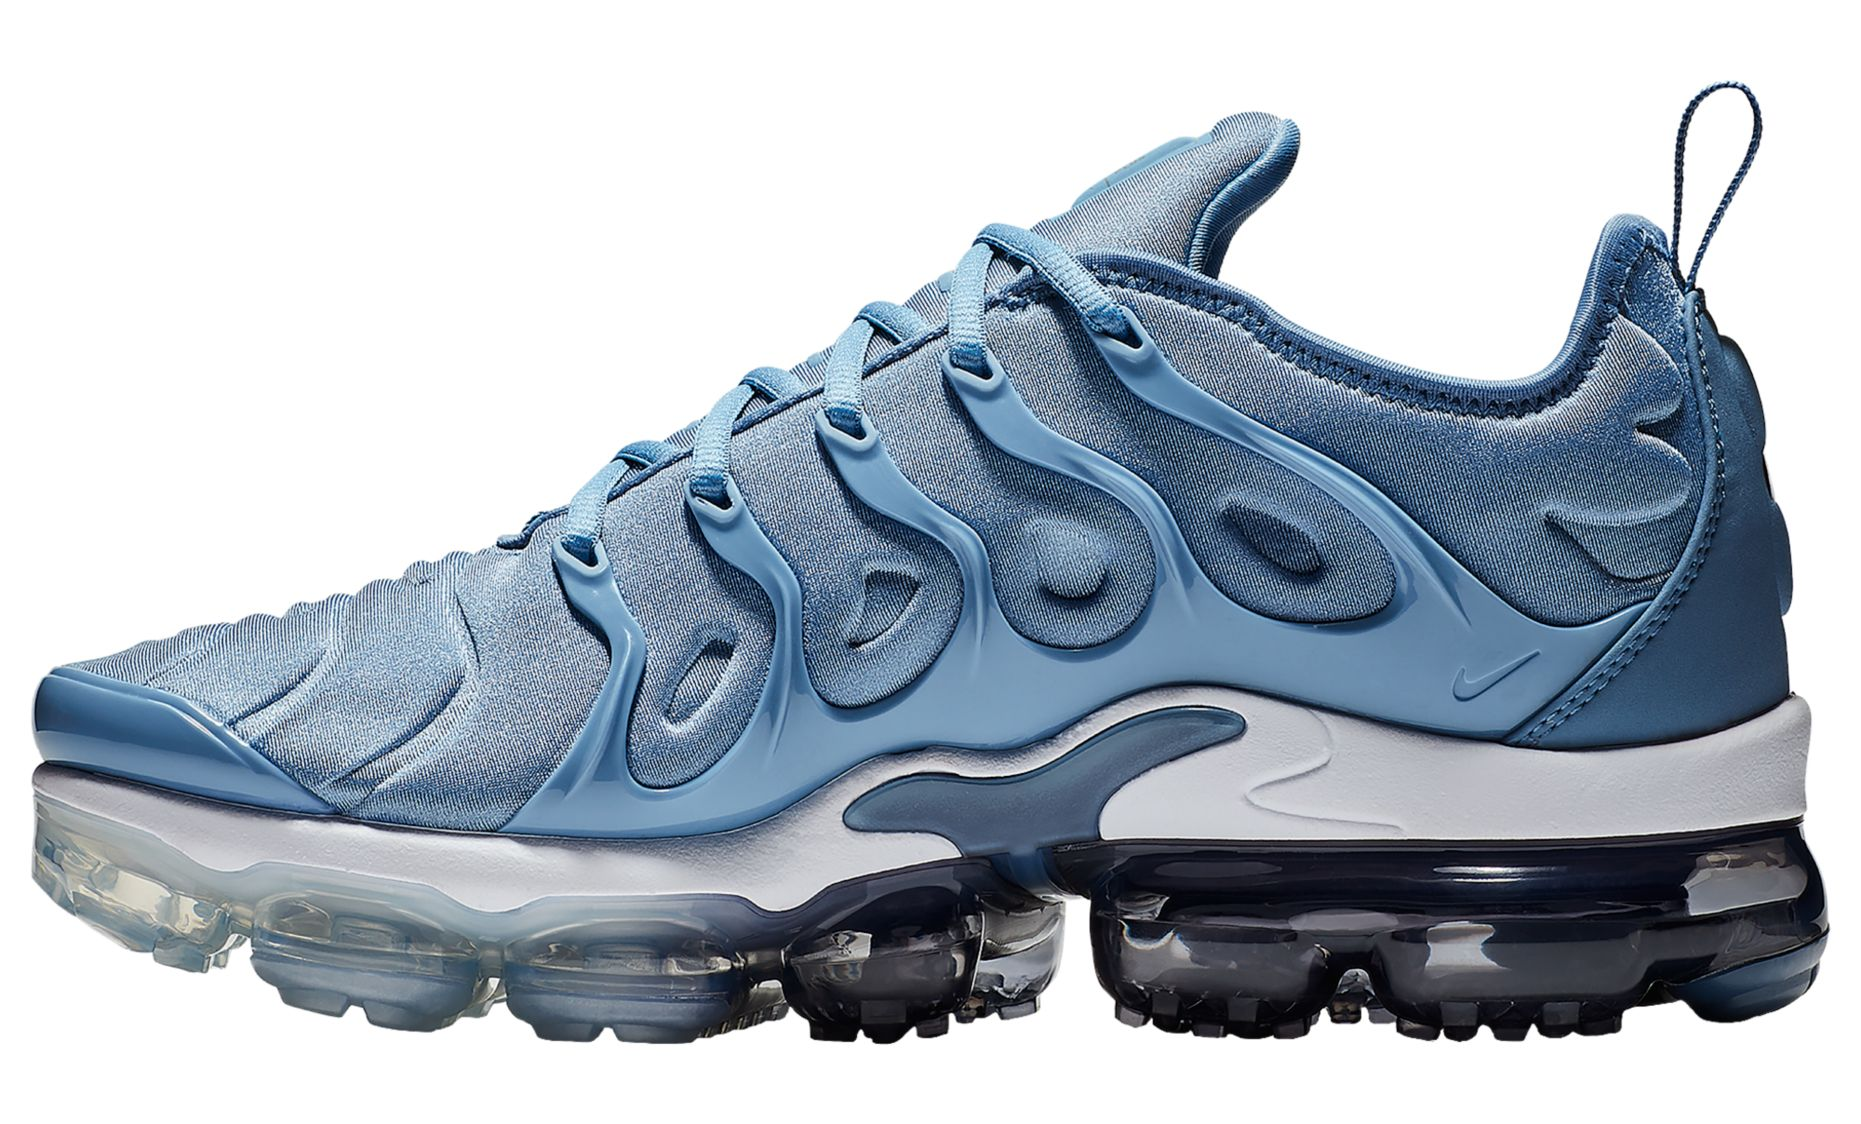 best sneakers 0e126 c5144 Kick Those Holidays Blues with the Nike Air VaporMax Plus ...